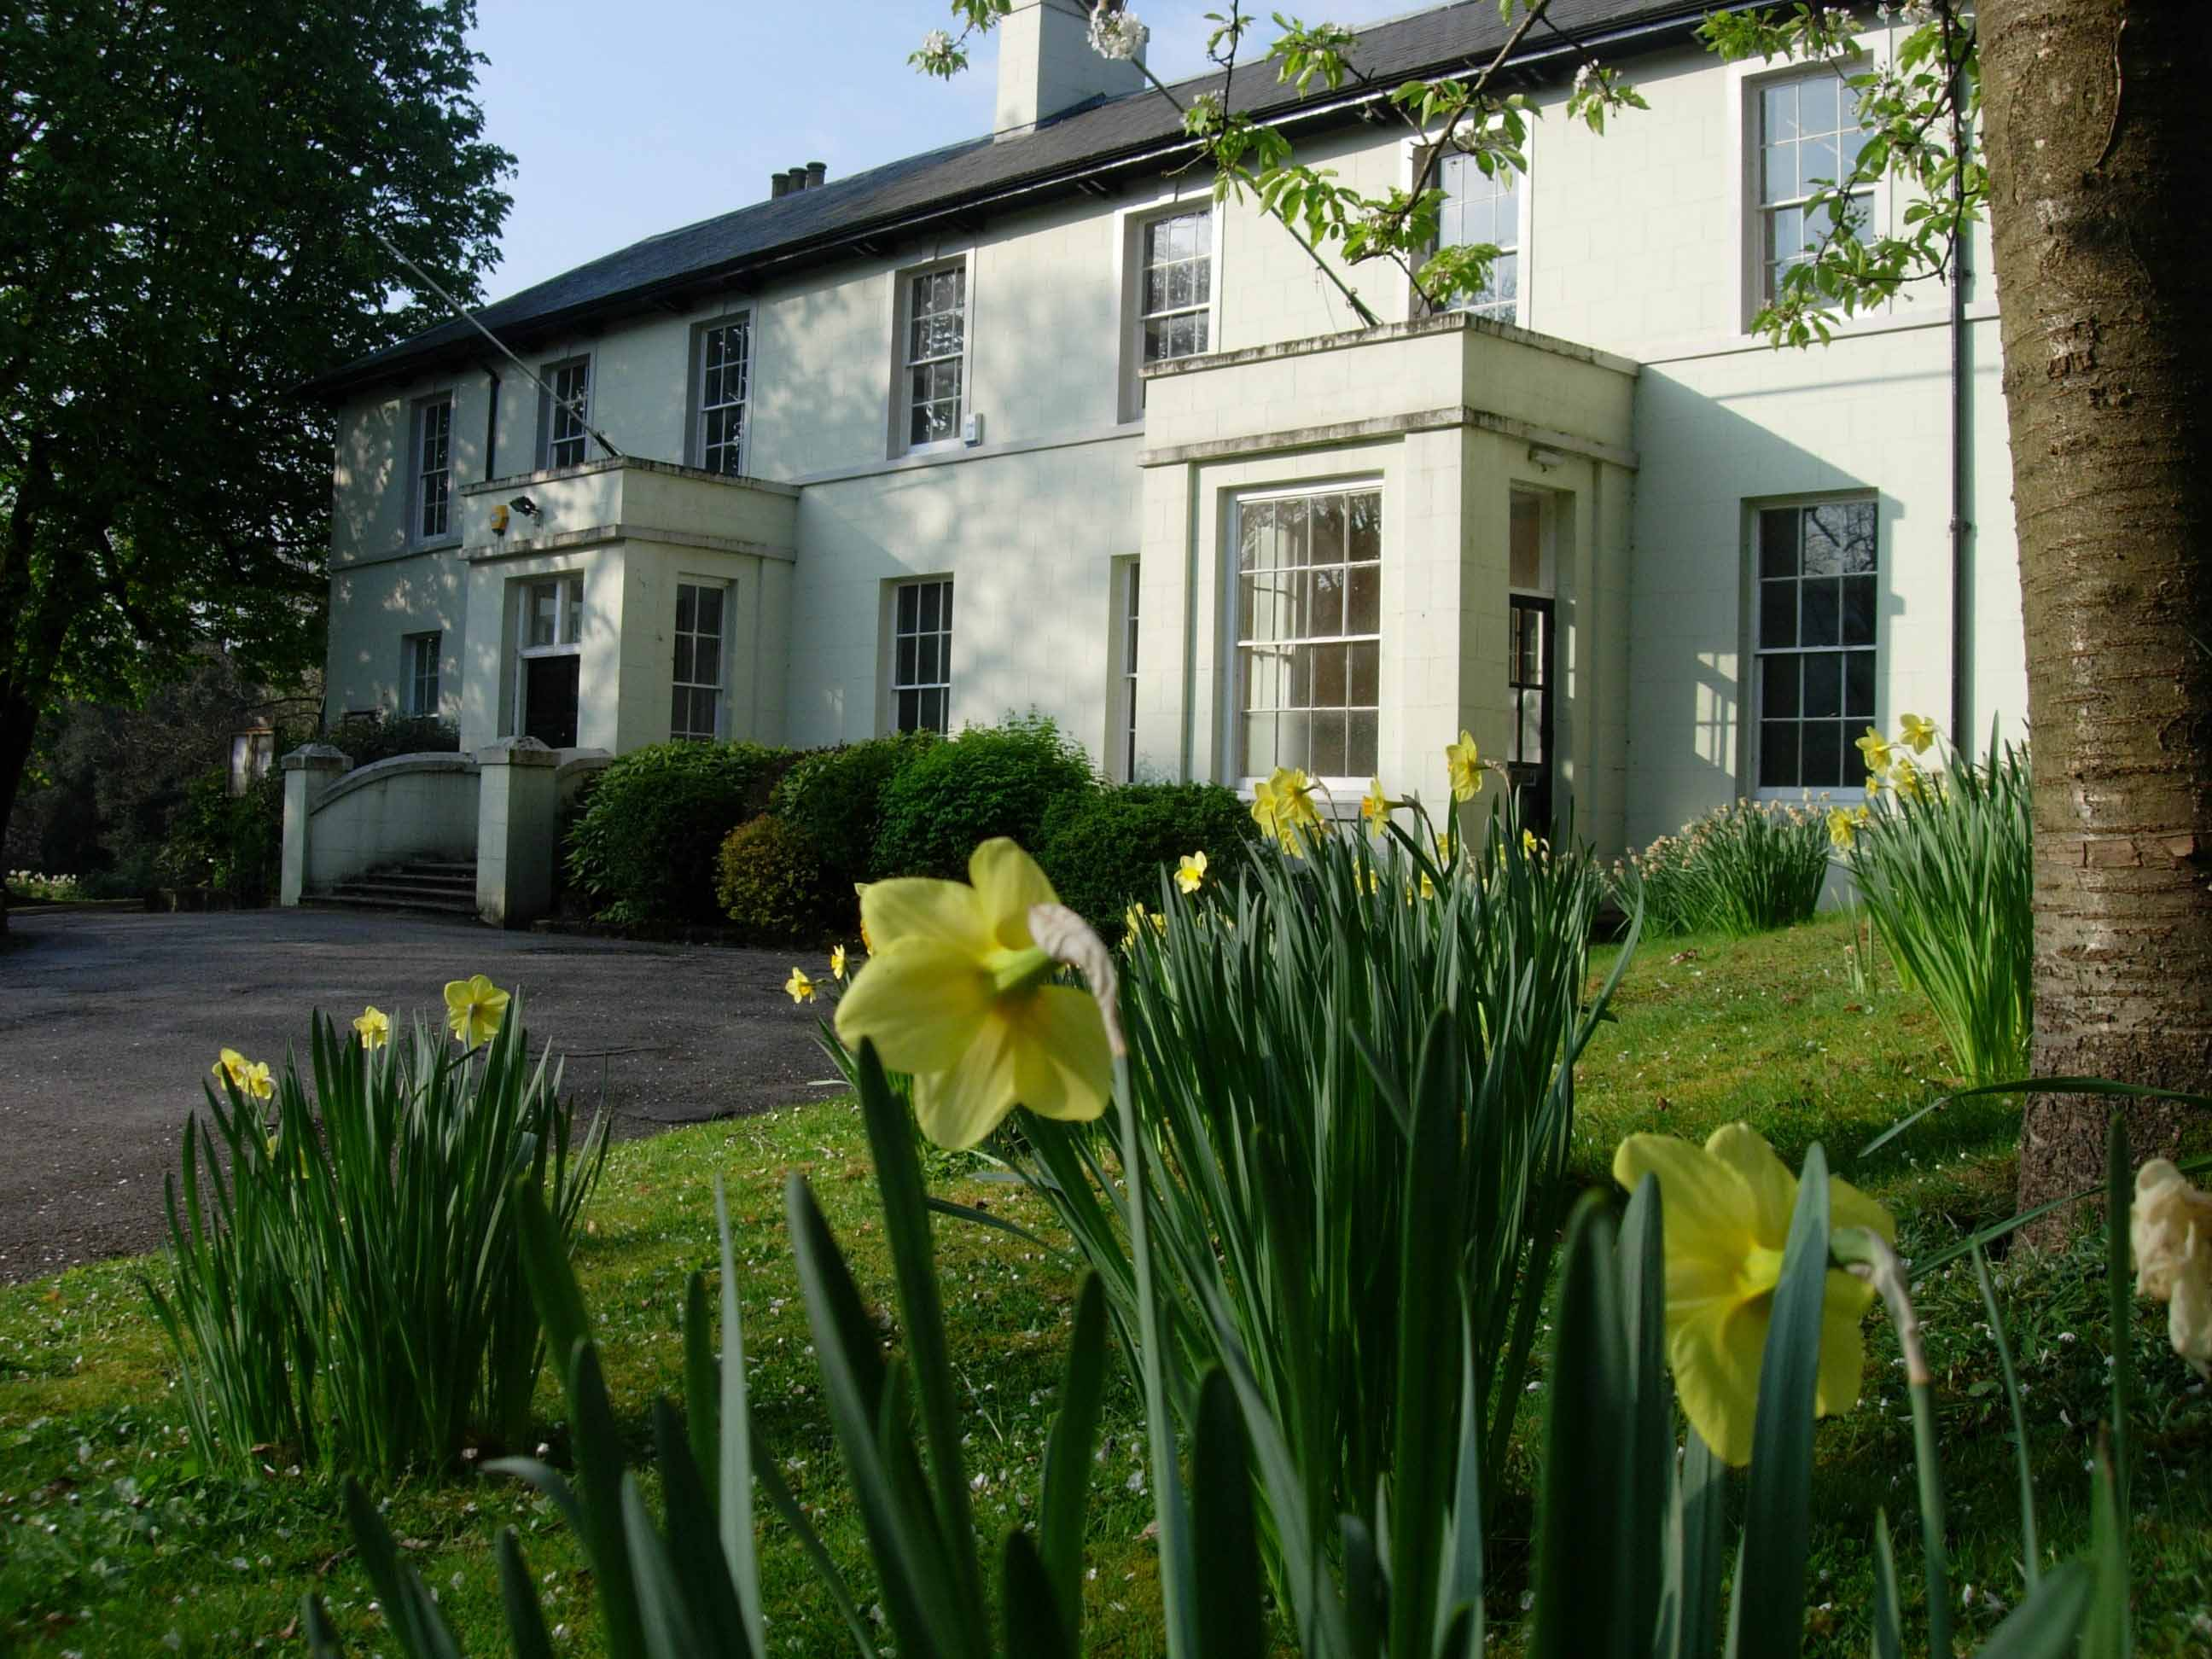 Bedwellty House in Spring